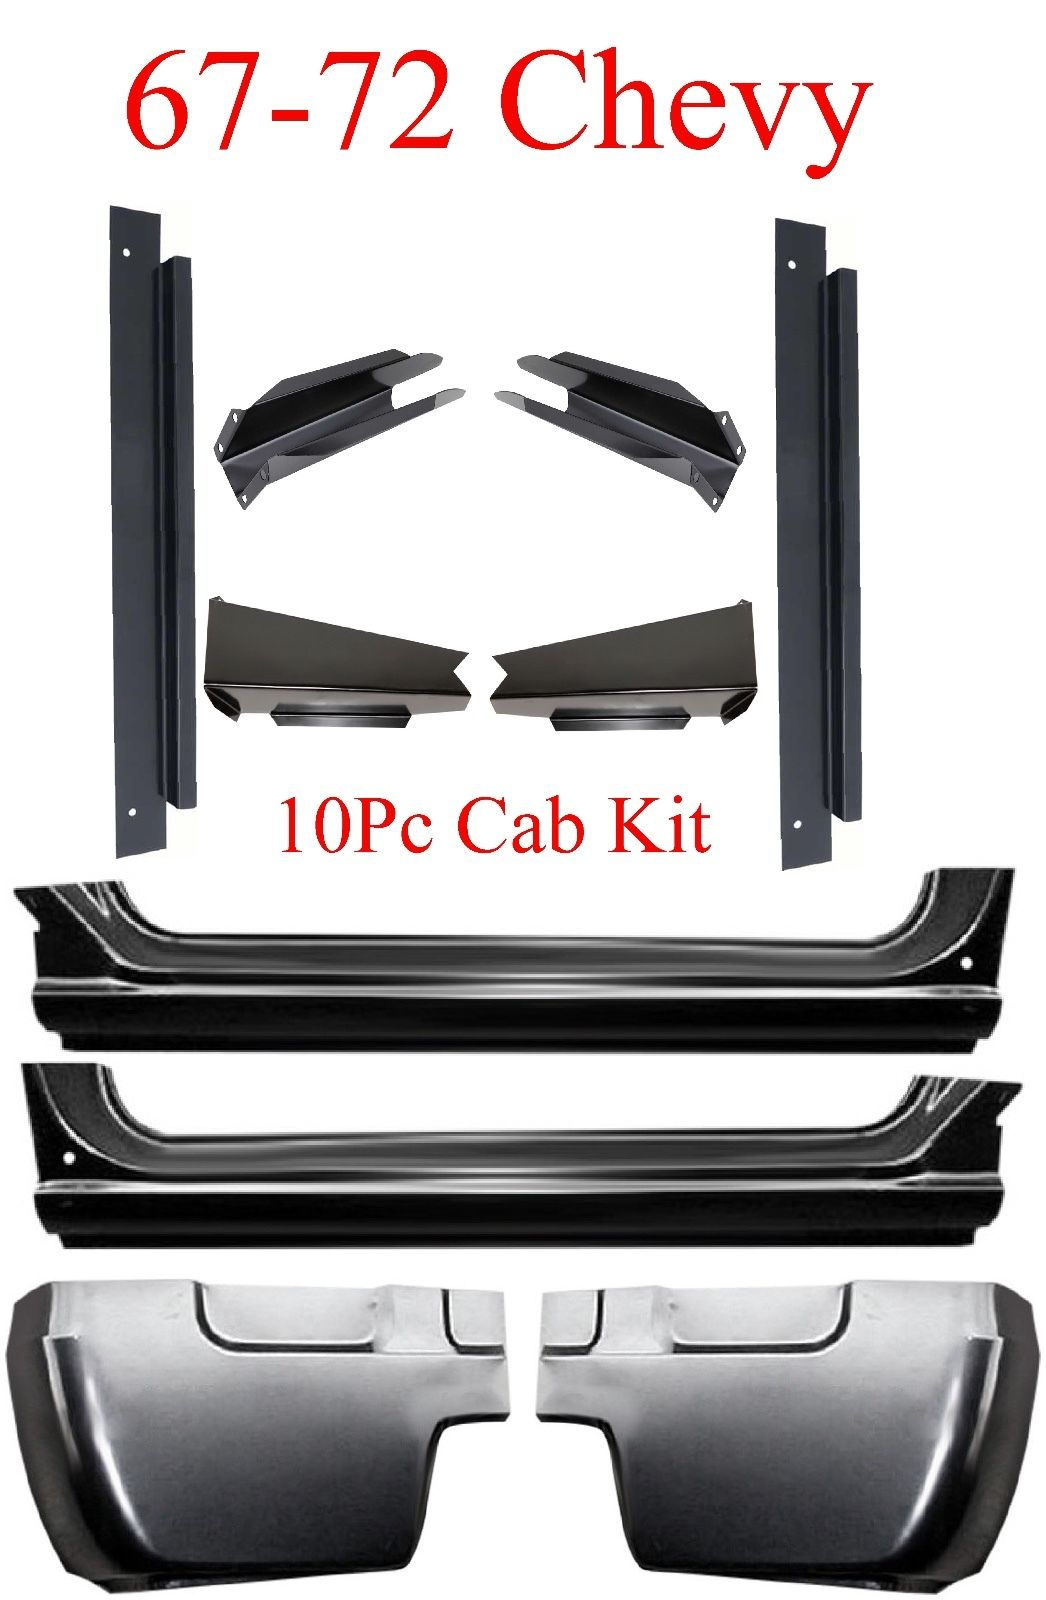 67 72 Chevy 10Pc Cab Repair Kit